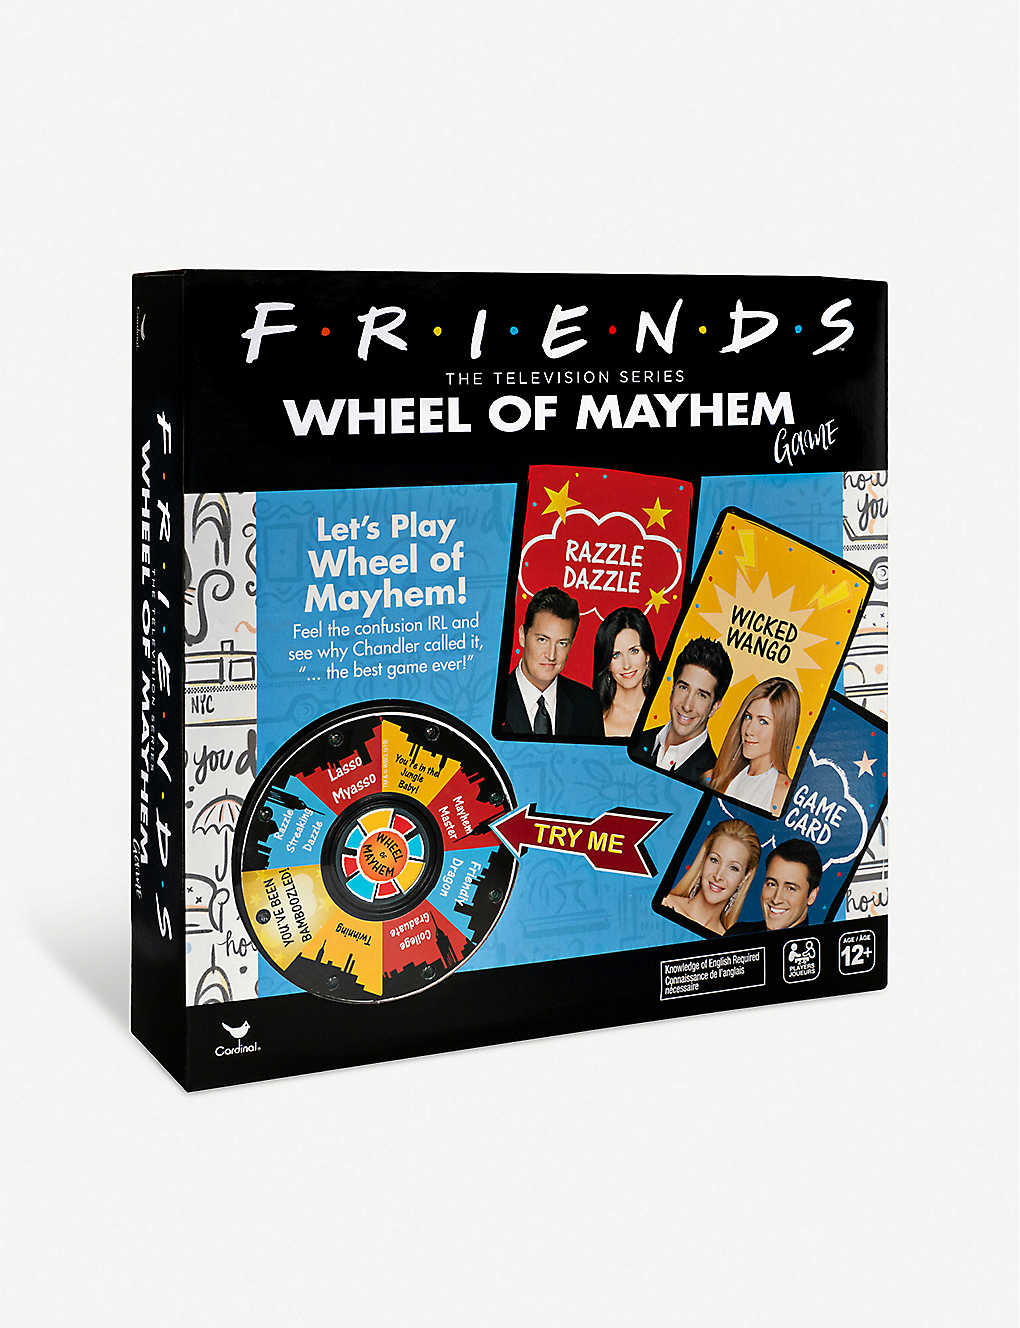 BOARD GAMES: Cardinal Friends: Wheel Of Mayhem board game